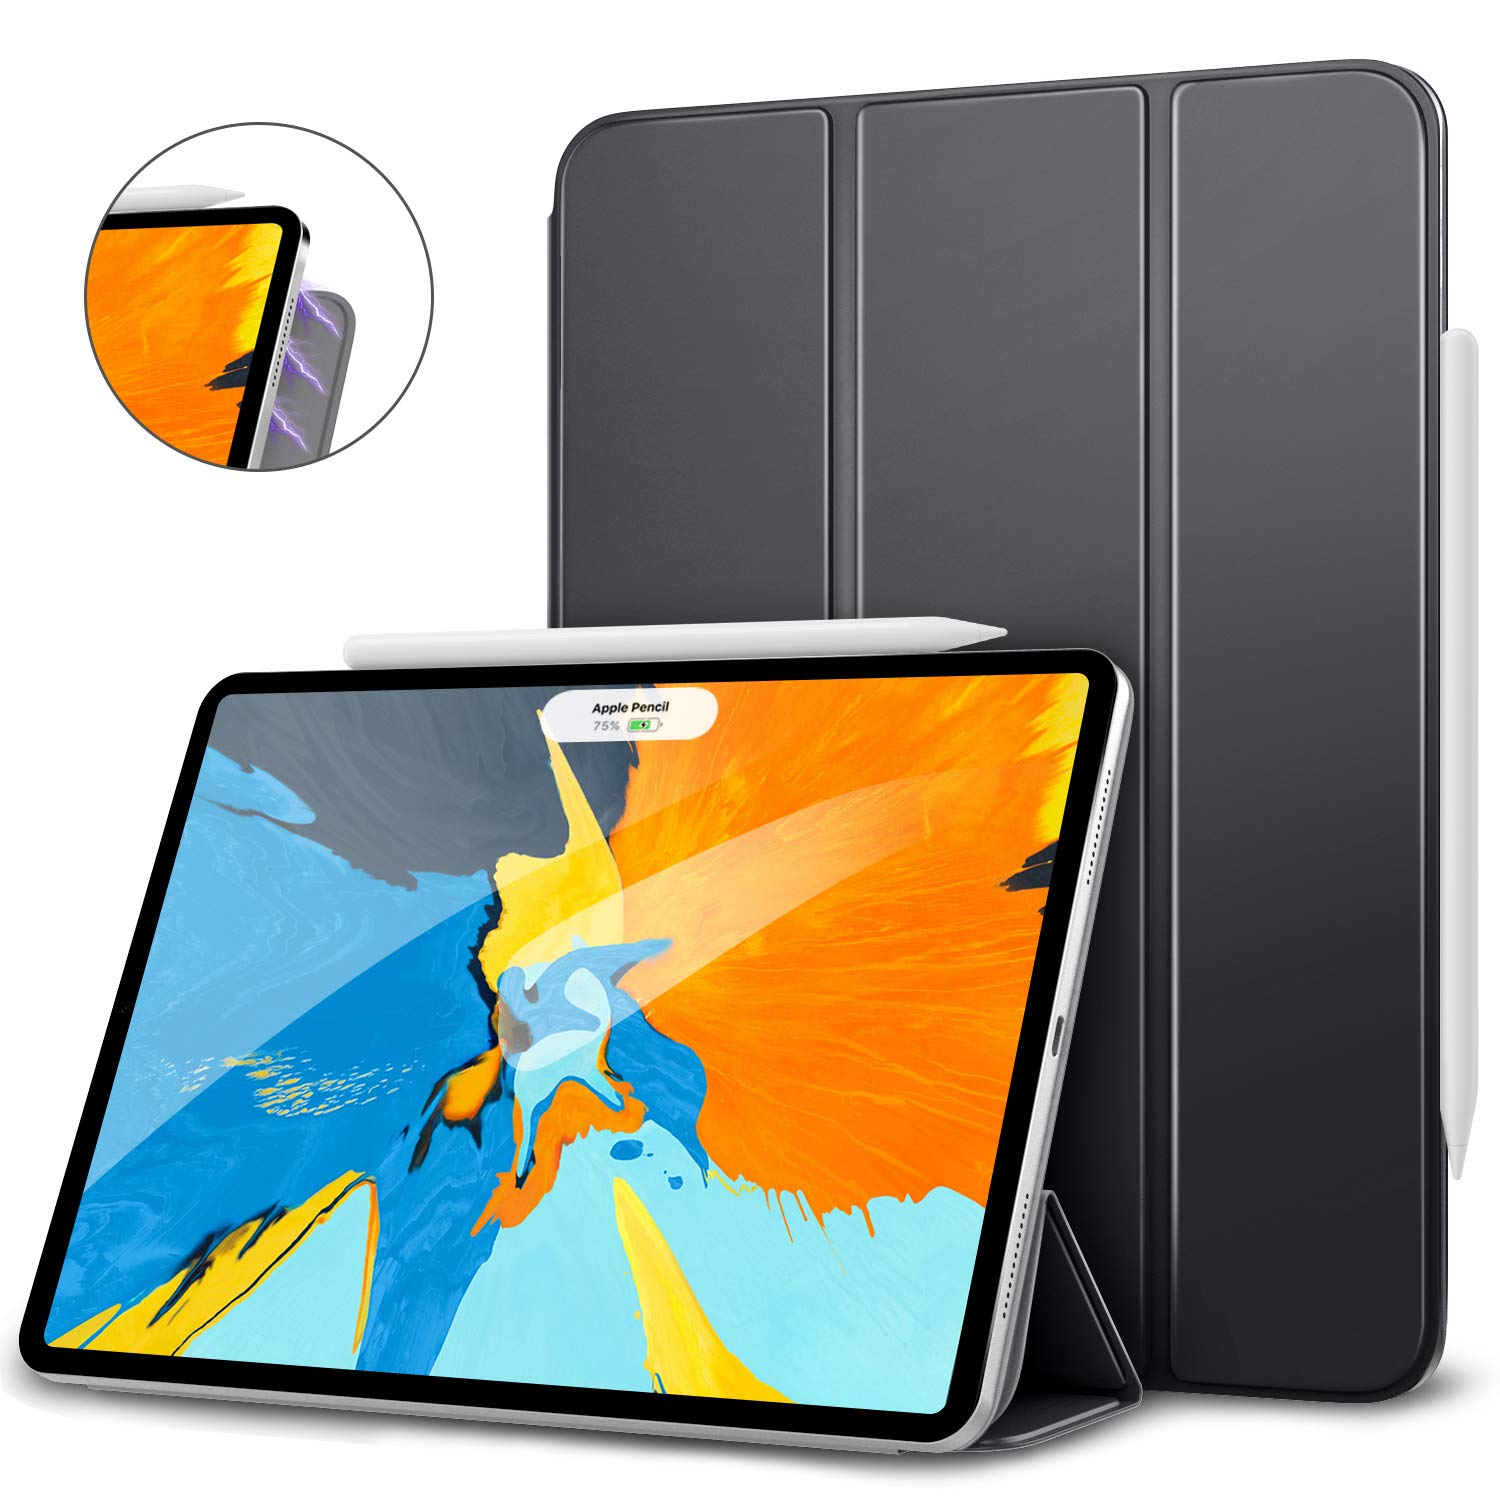 The MoKo Magnetic Smart Folio Case for 11-inch iPad Pro